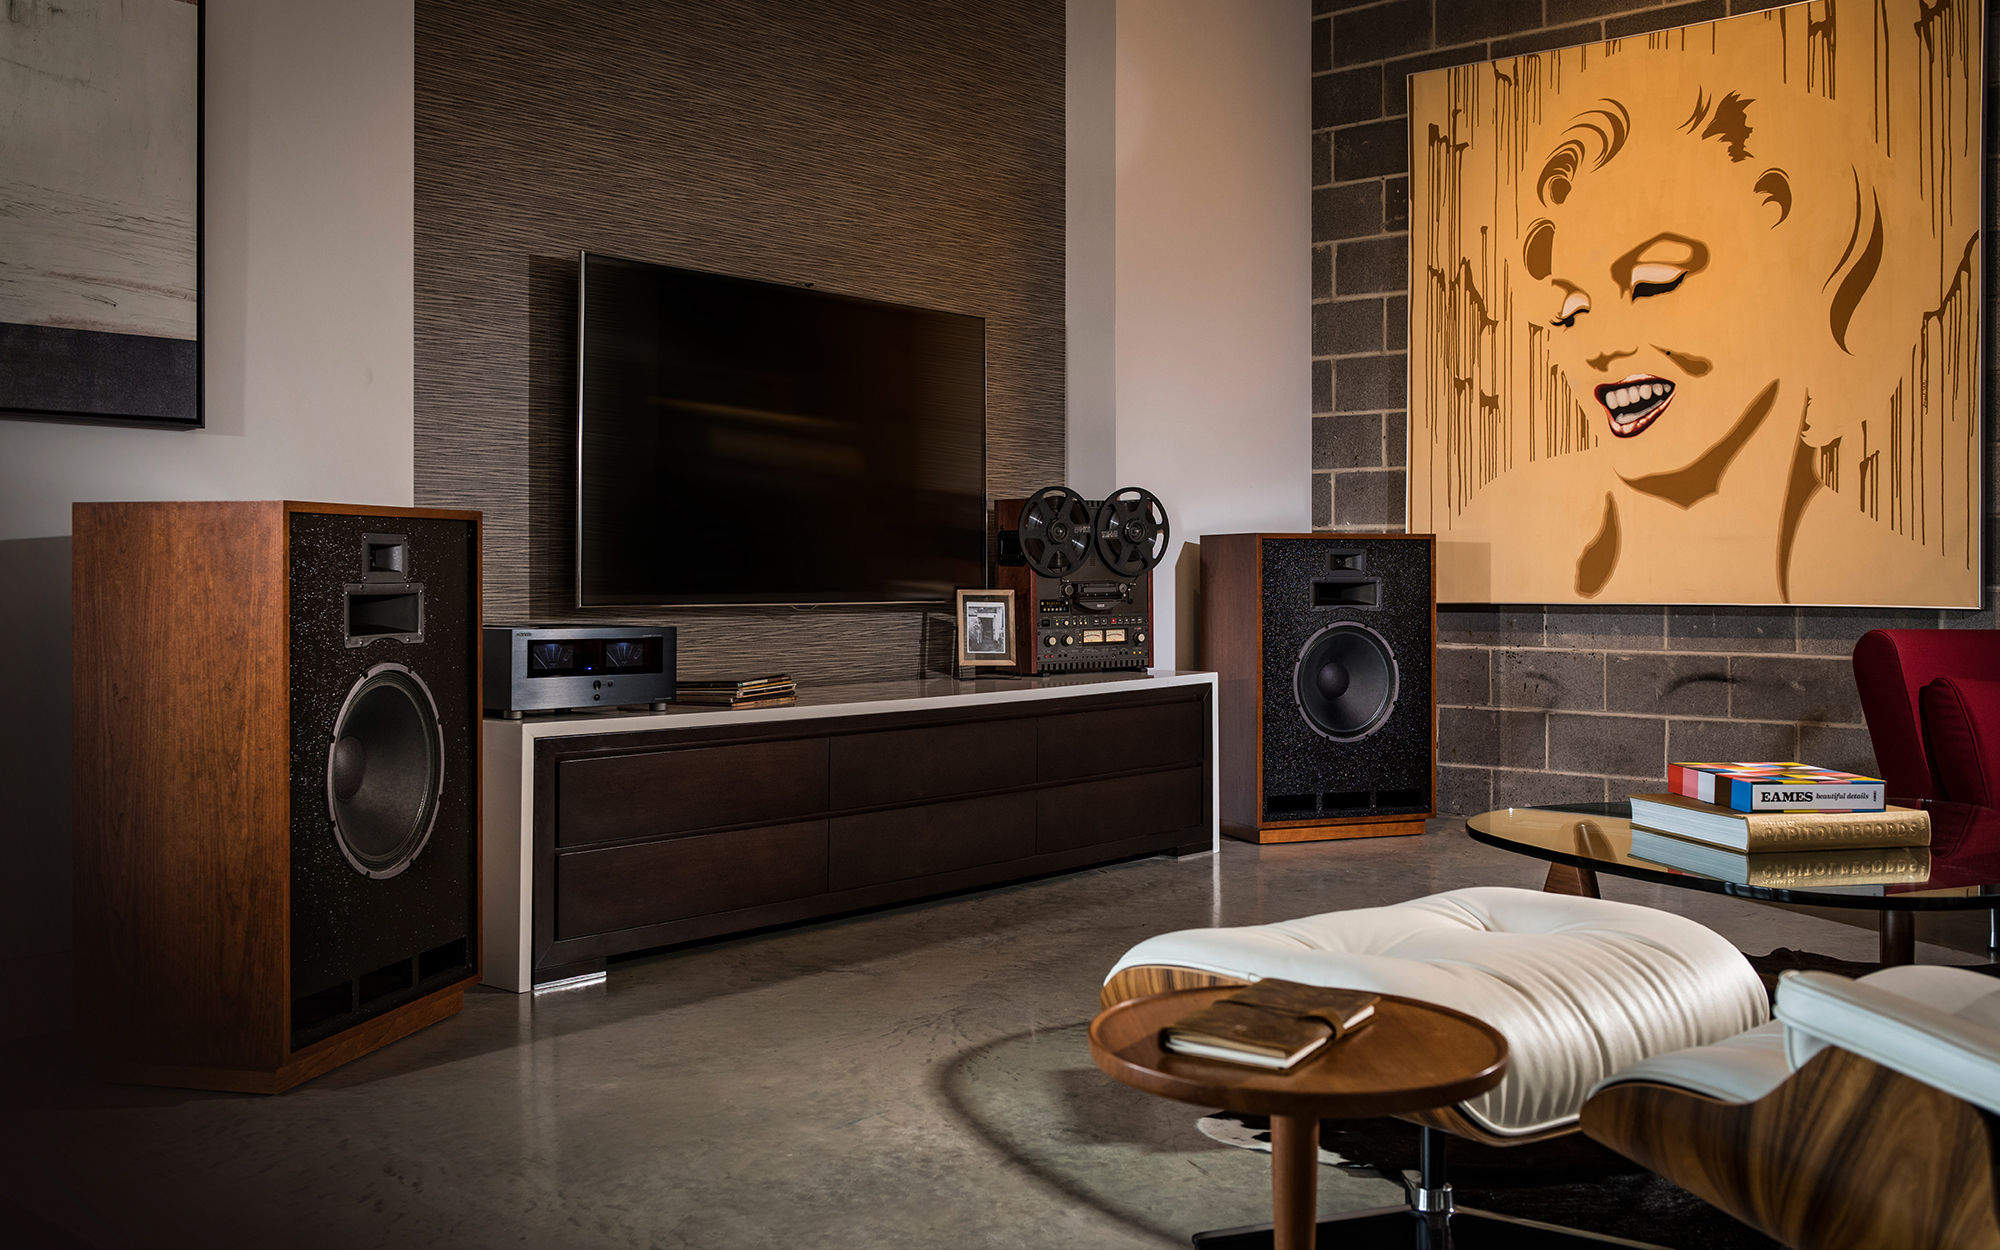 2 Cornwall III floorstanding speakers flanking a tv in a living room